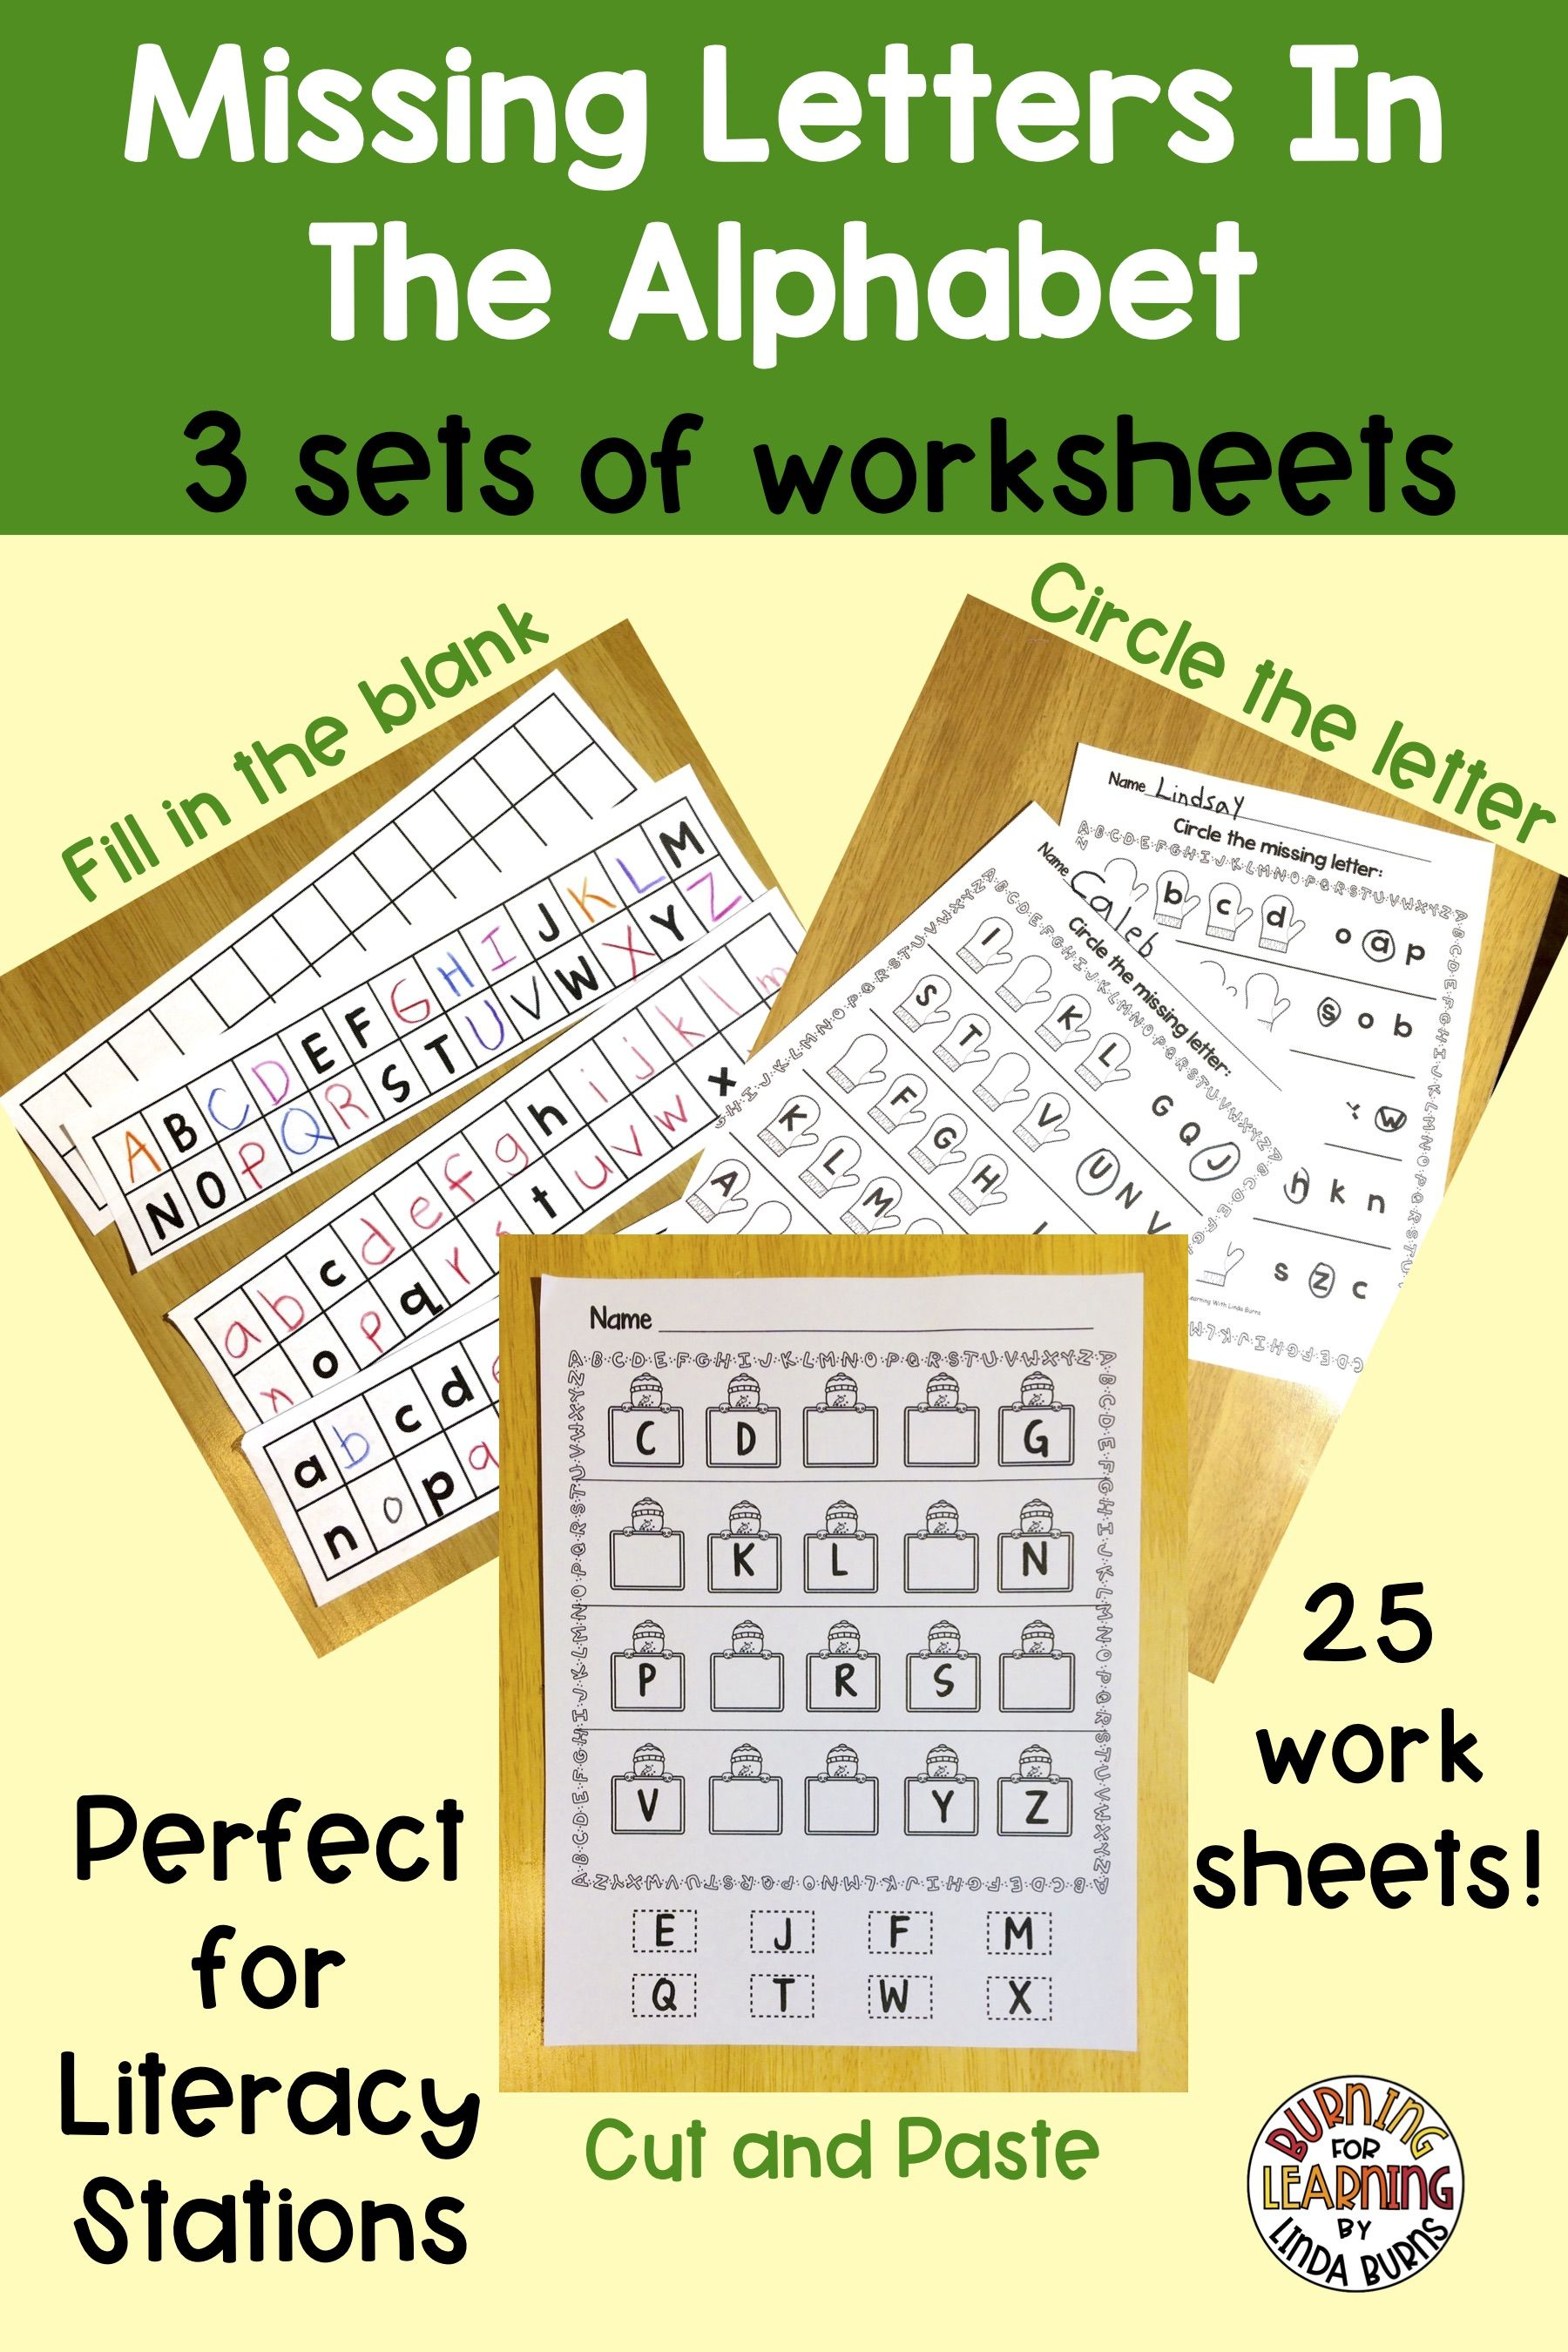 Missing Letters In The Alphabet Worksheets